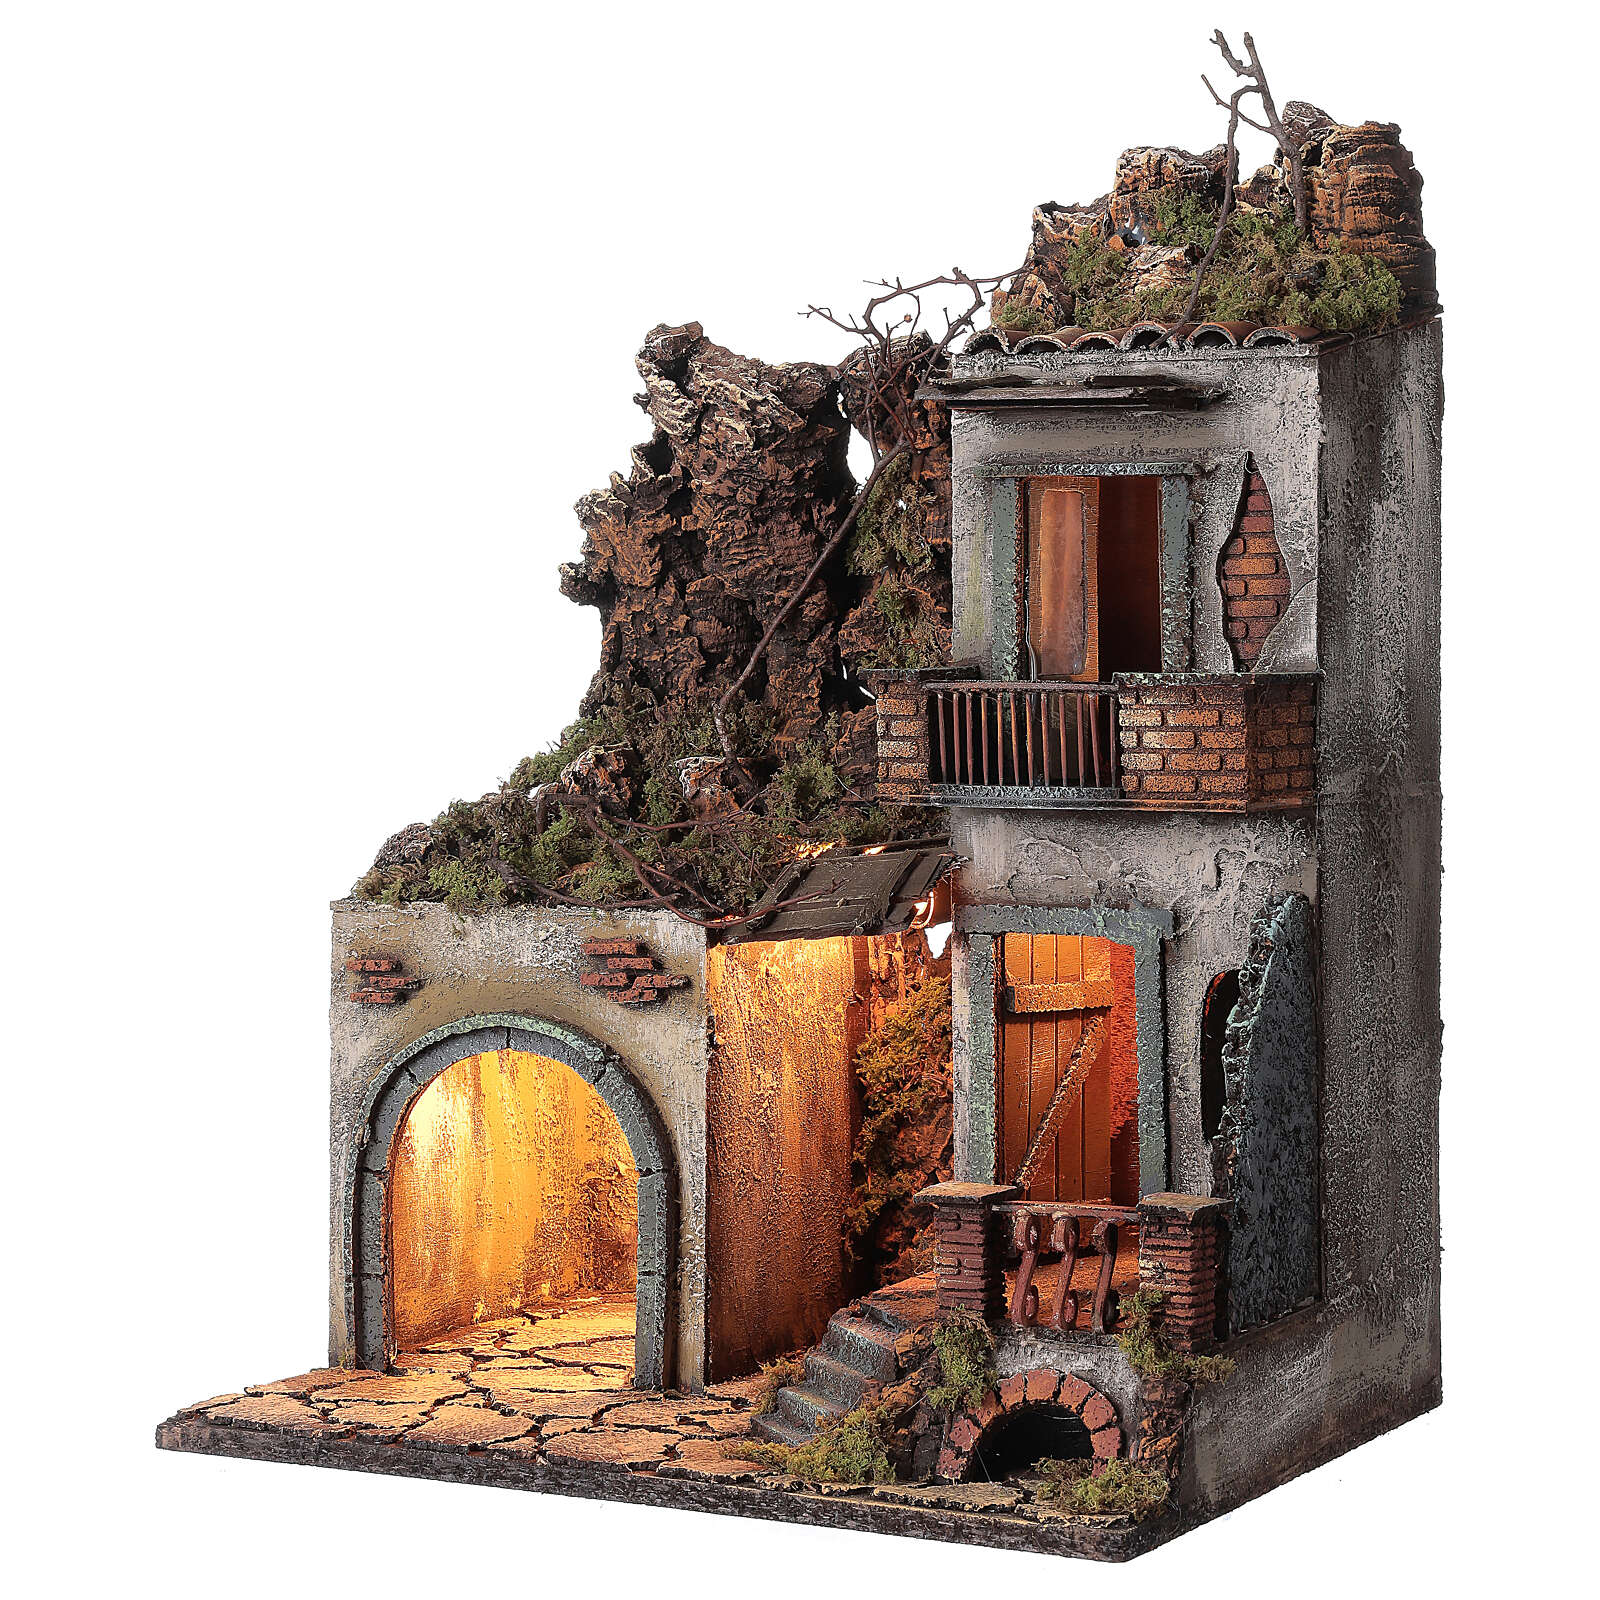 House with stable and balcony 50x30x40 cm Neapolitan Nativity Scene with 12 cm figurines 4